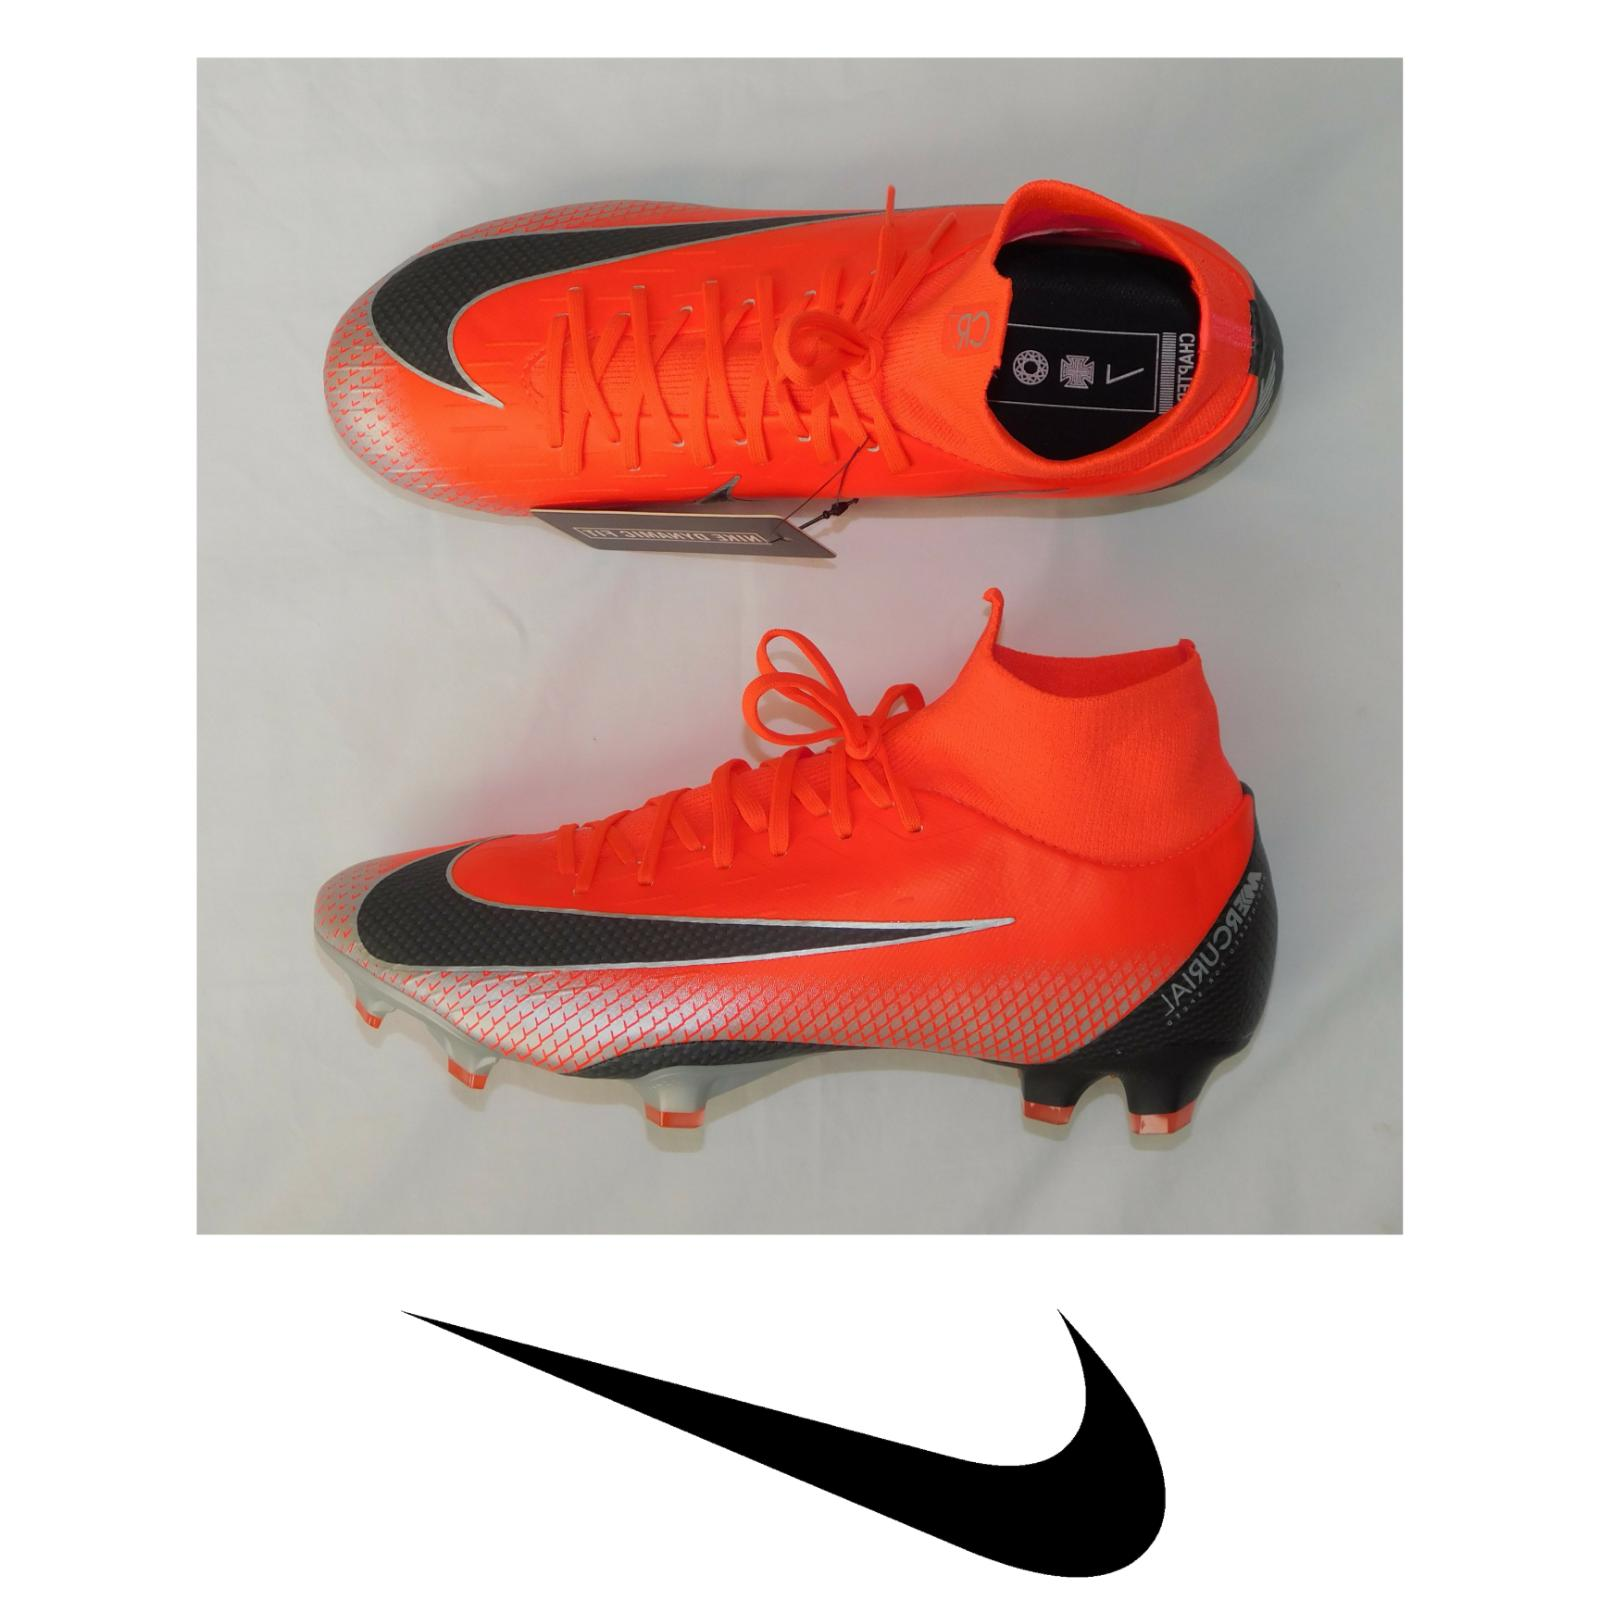 mercurial superfly 6 pro cr7 fg bright